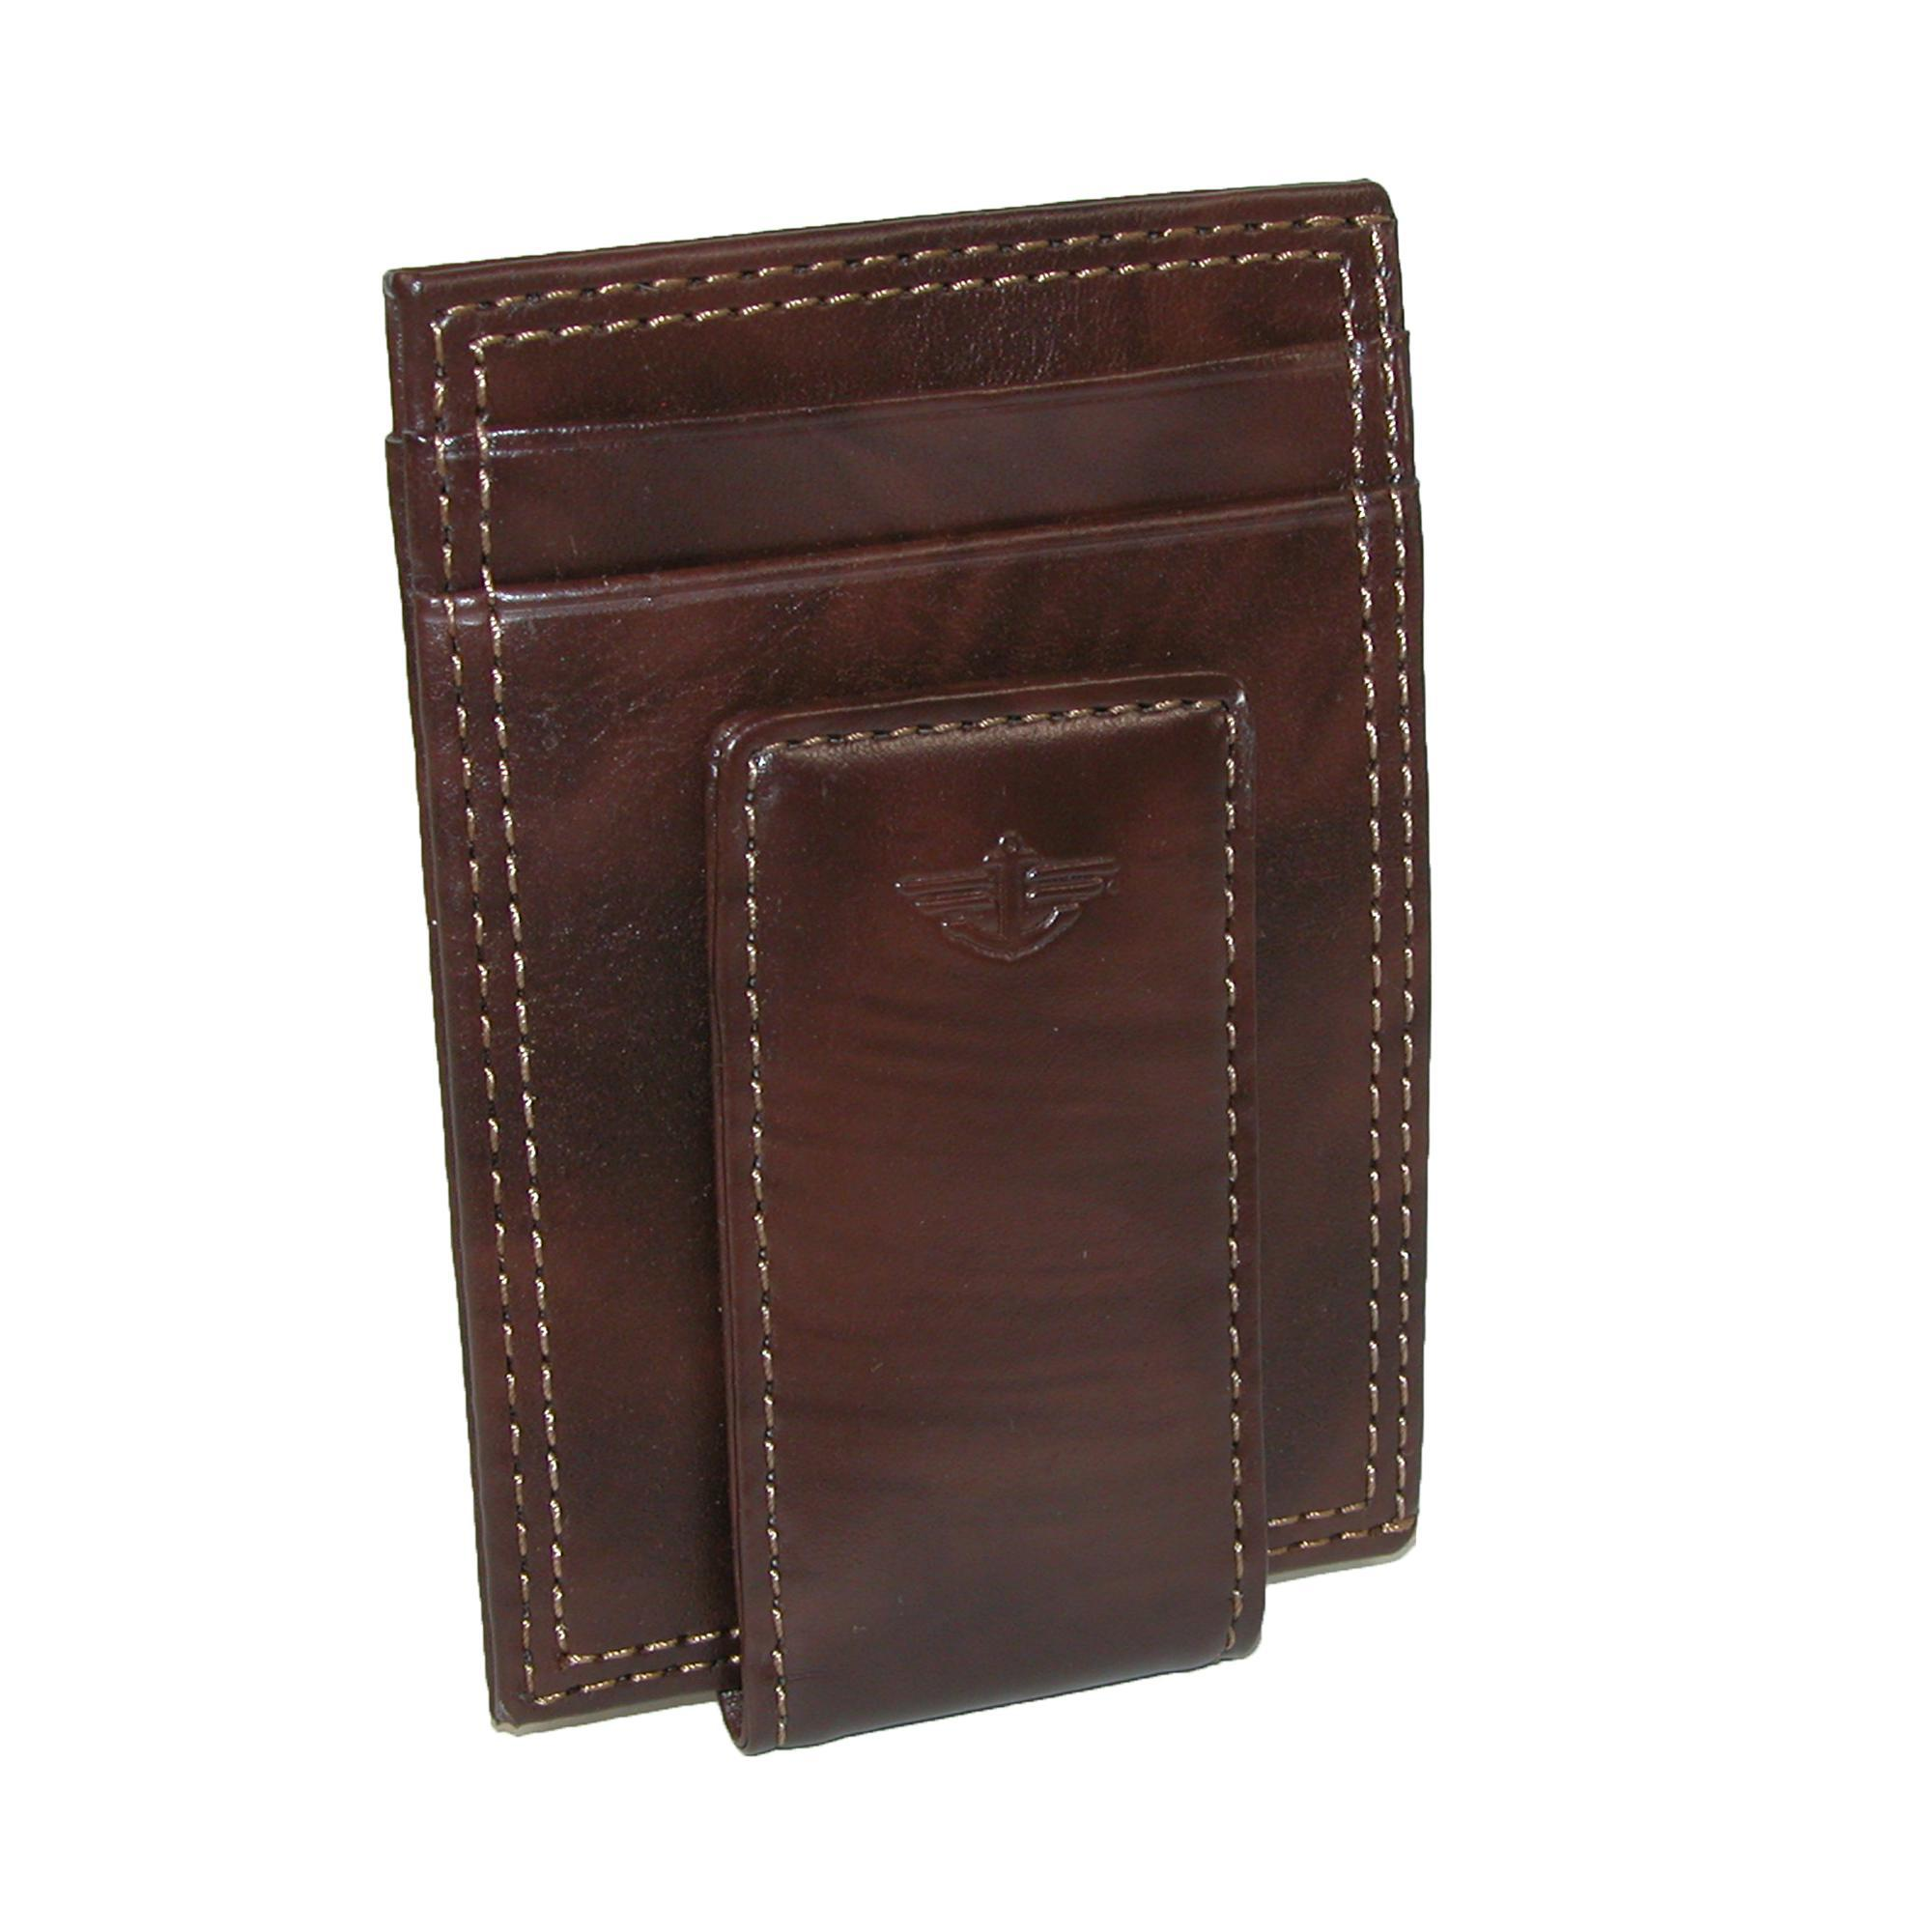 Dockers Men's Leather Slim Front Pocket Wallet with Magne...